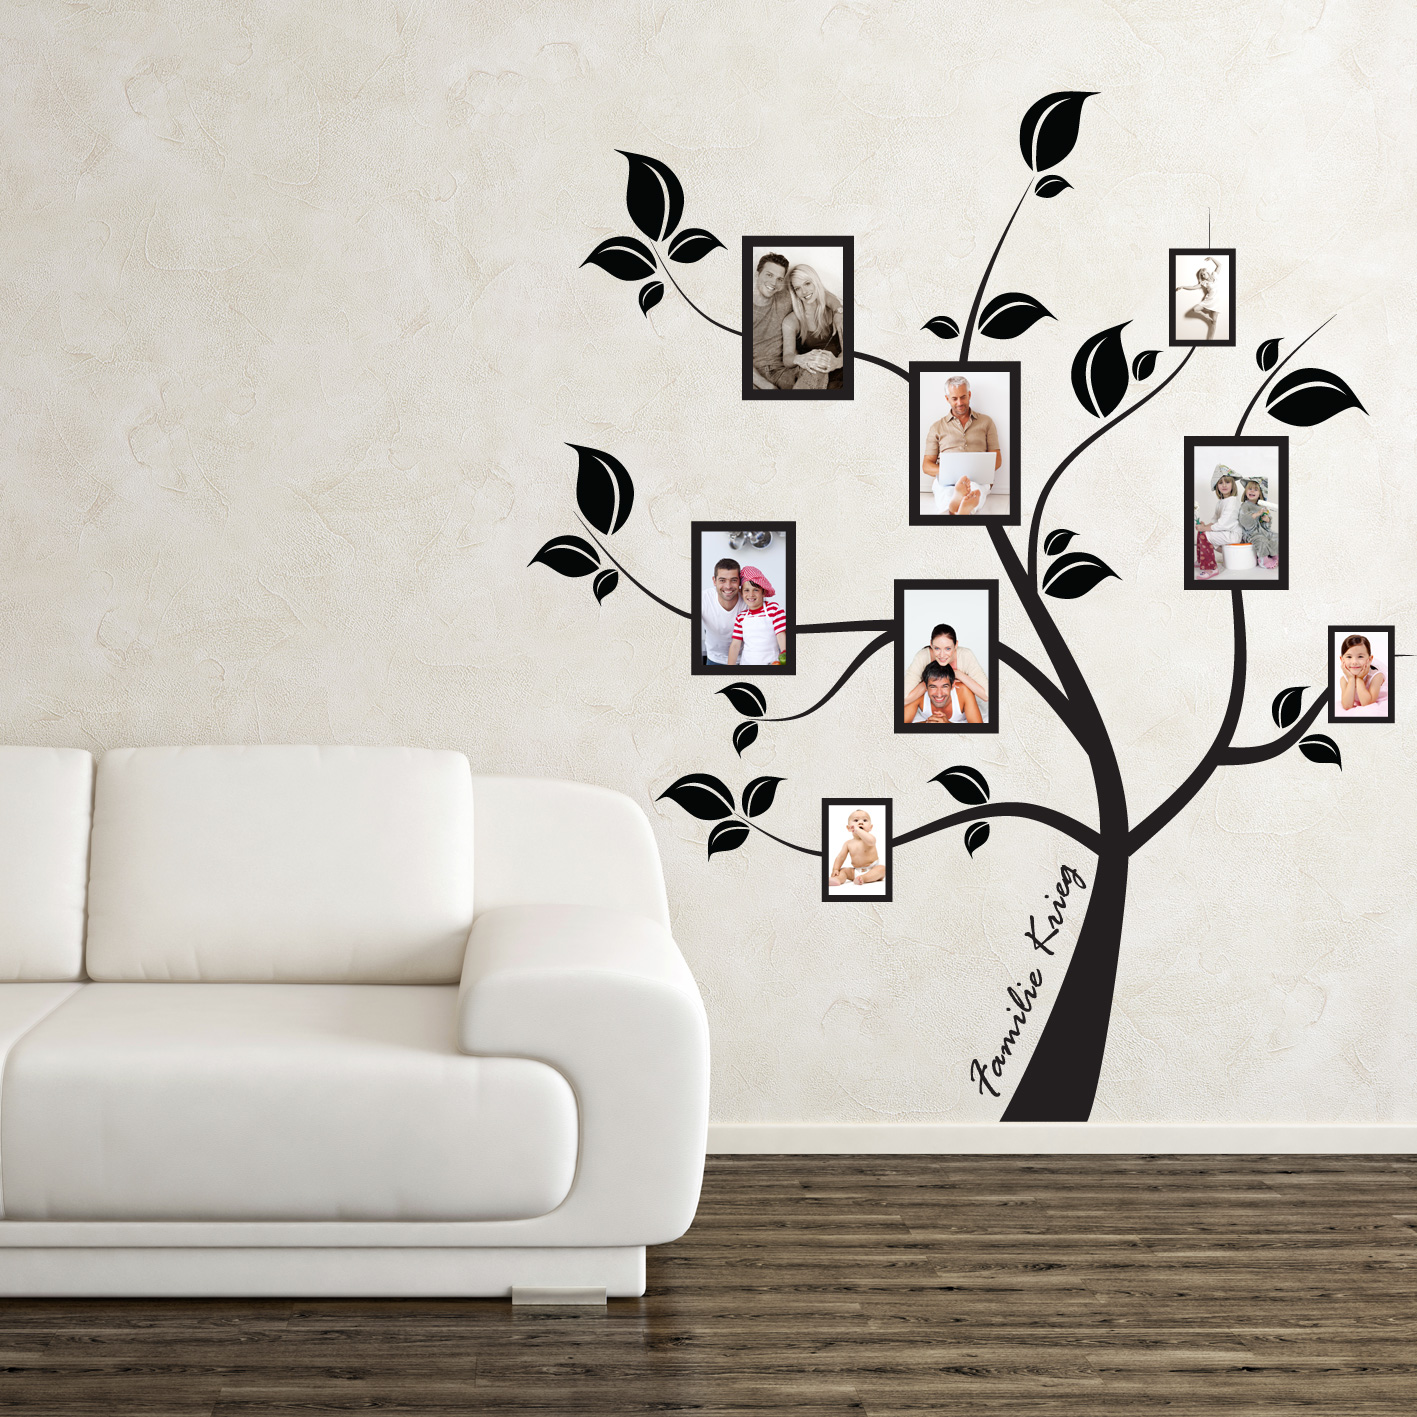 arborele familiei sticker perete stickere perete. Black Bedroom Furniture Sets. Home Design Ideas